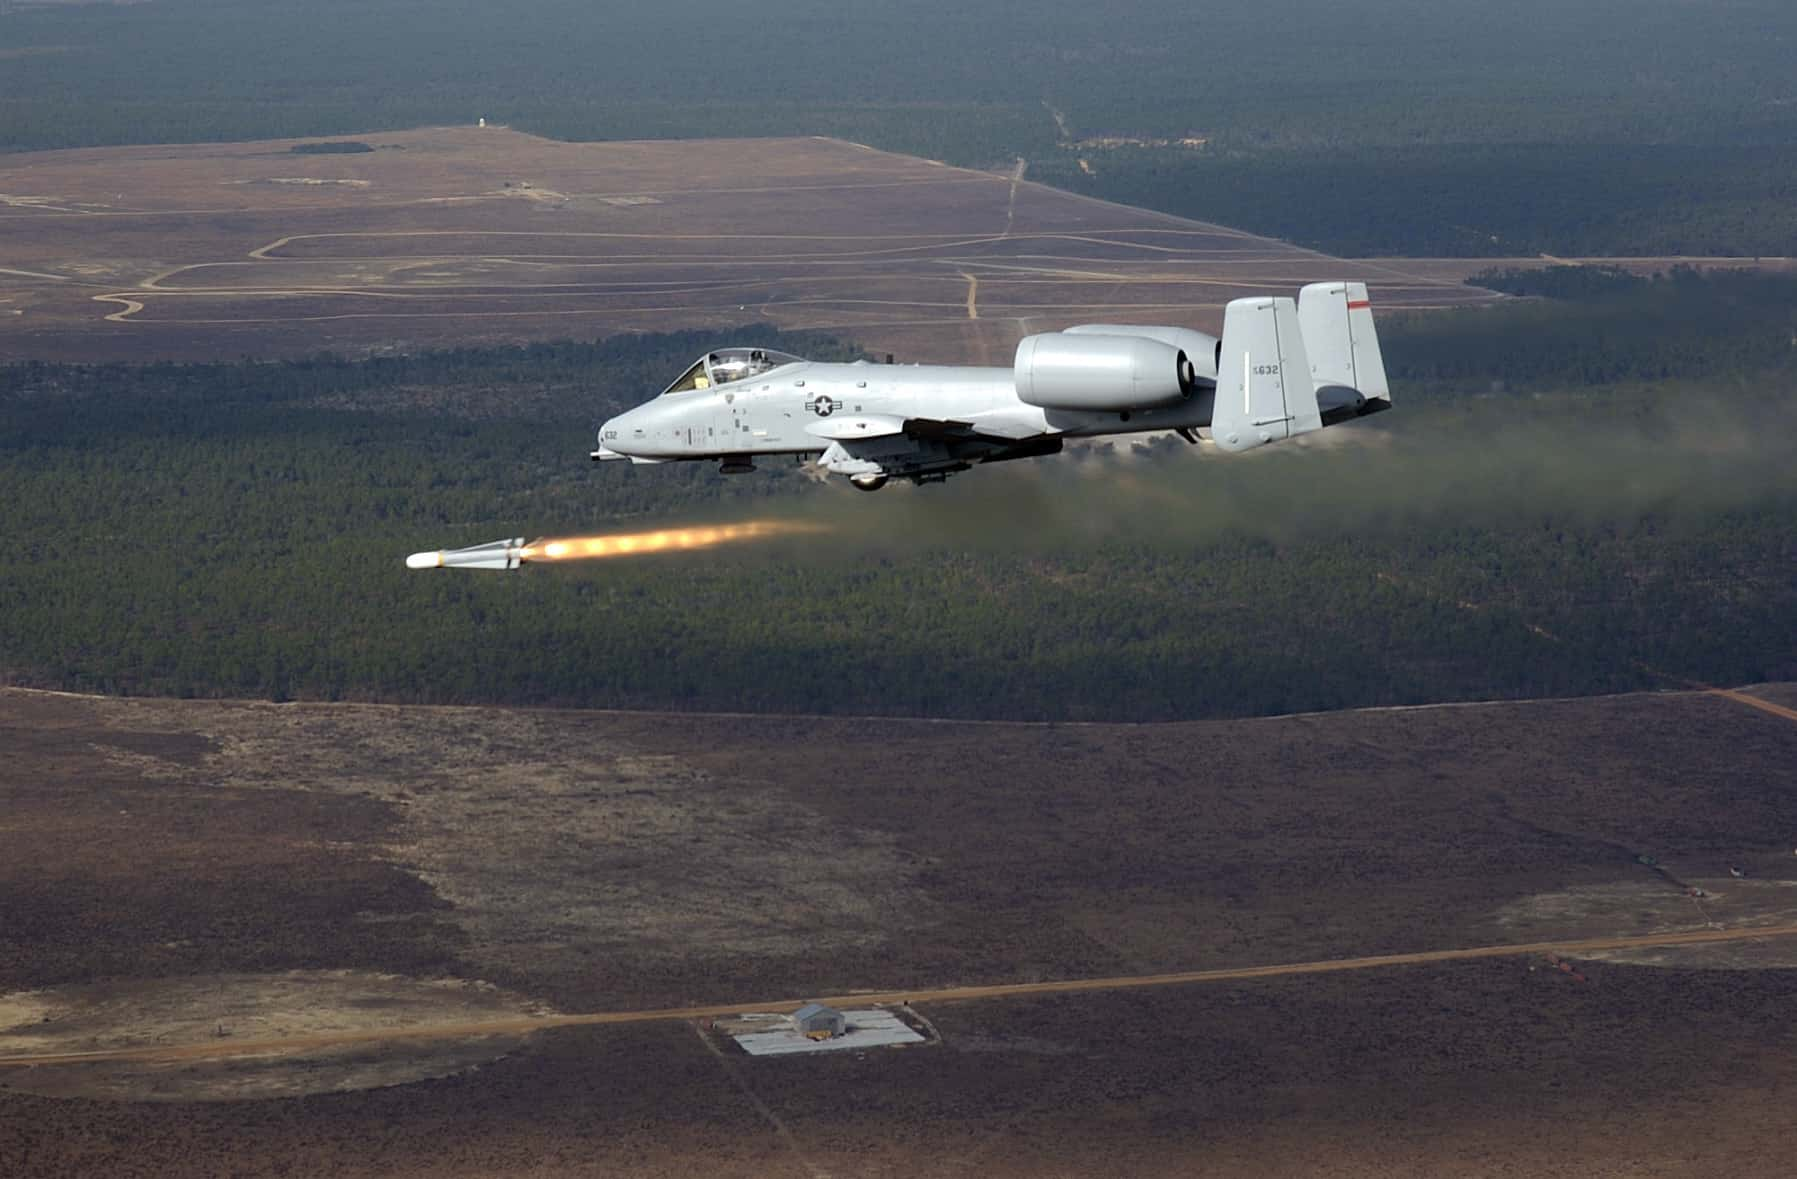 An AGM-65 Maverick missile flies away from a US Air Force (USAF) A-10 Thunderbolt attack aircraft.  (Wikimedia)